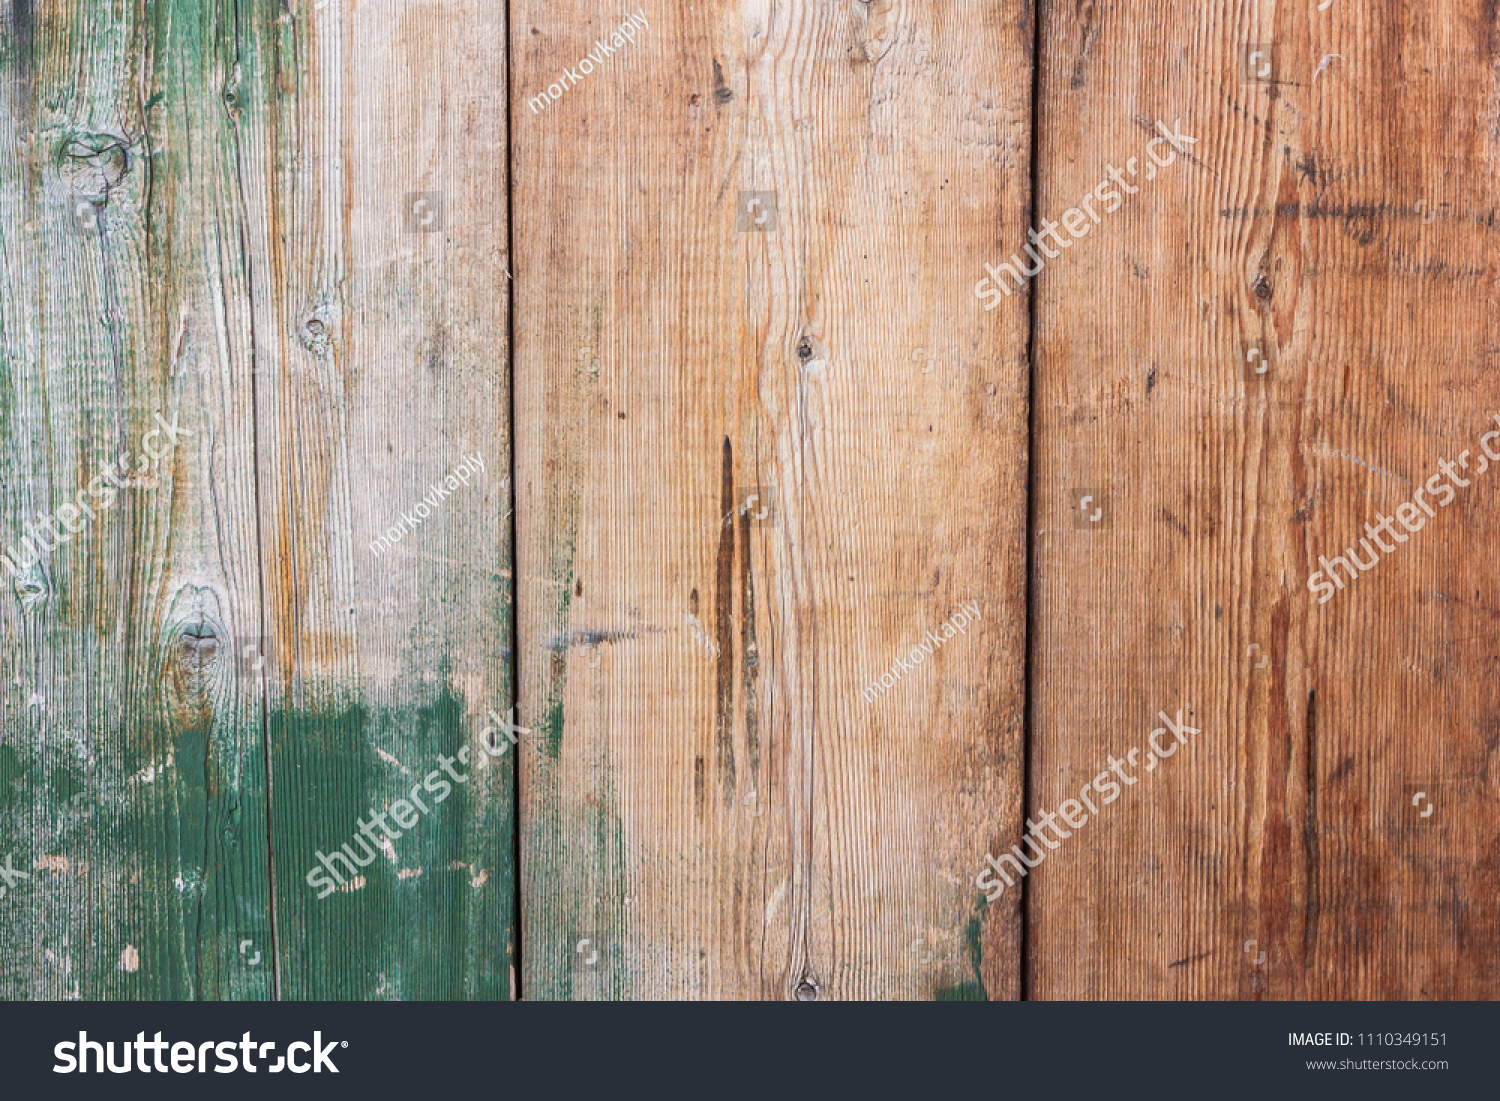 Green Barn Wooden Wall Paneling Wide Stock Photo Edit Now 1110349151